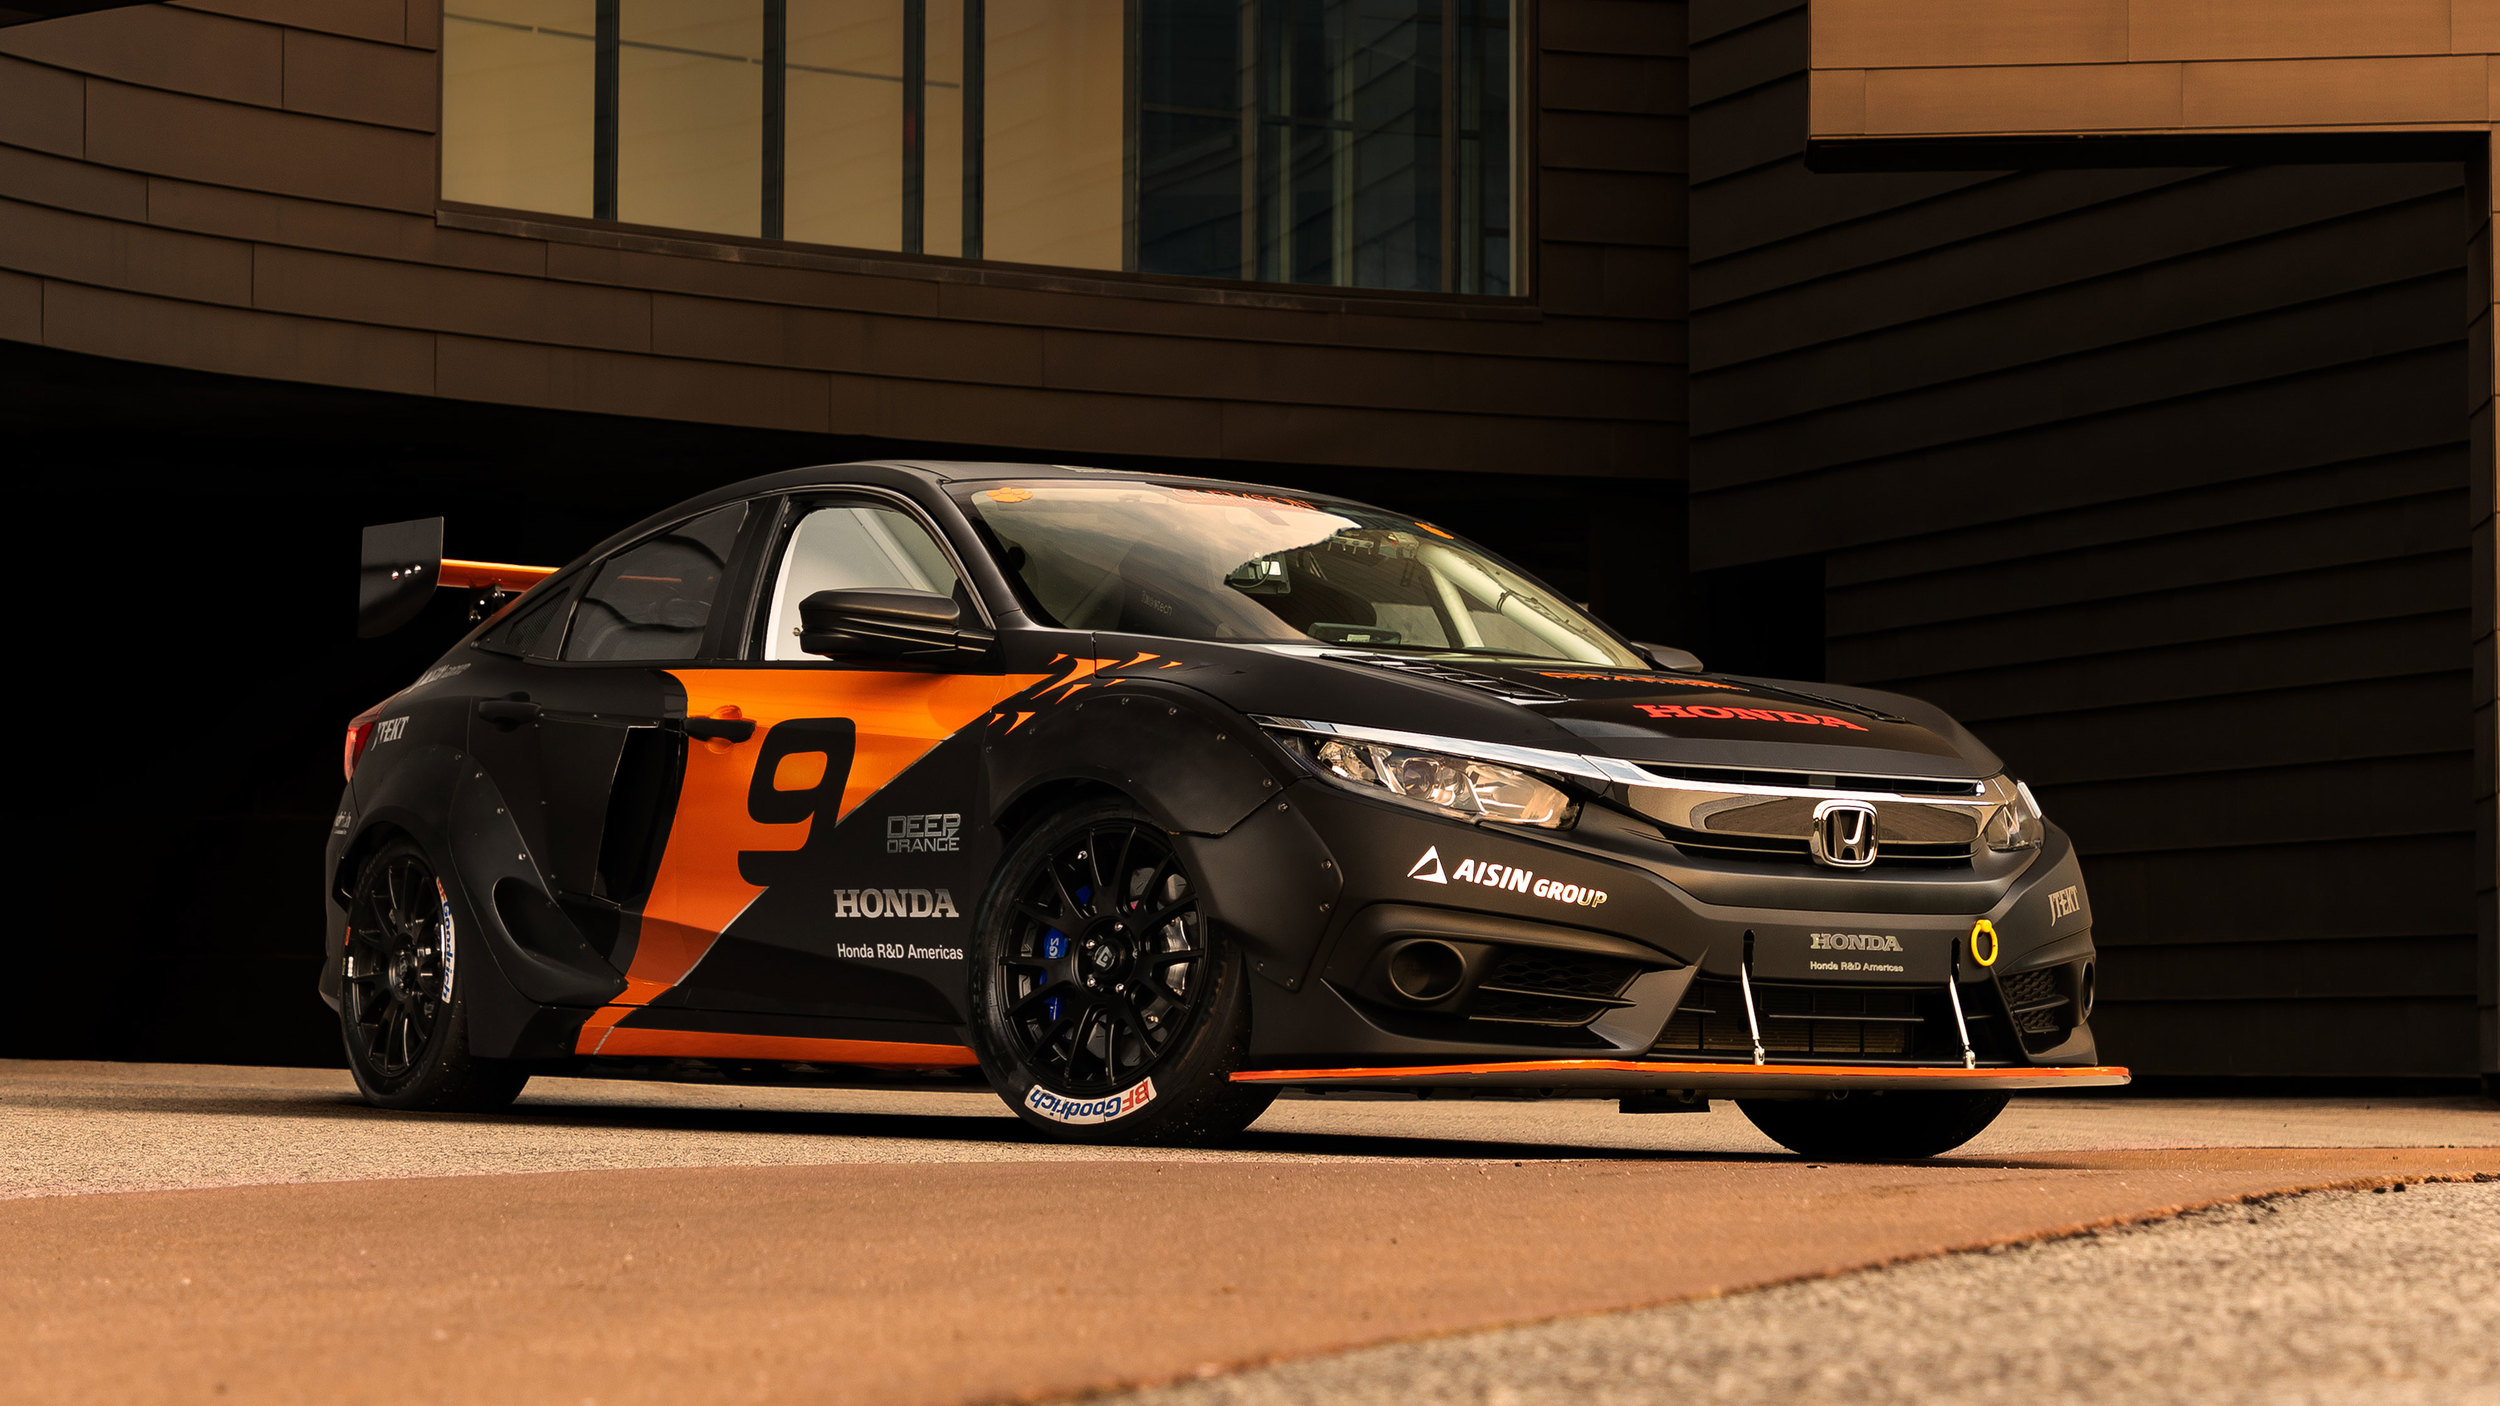 Honda Civic with hybrid powertrain by Clemson University (4)